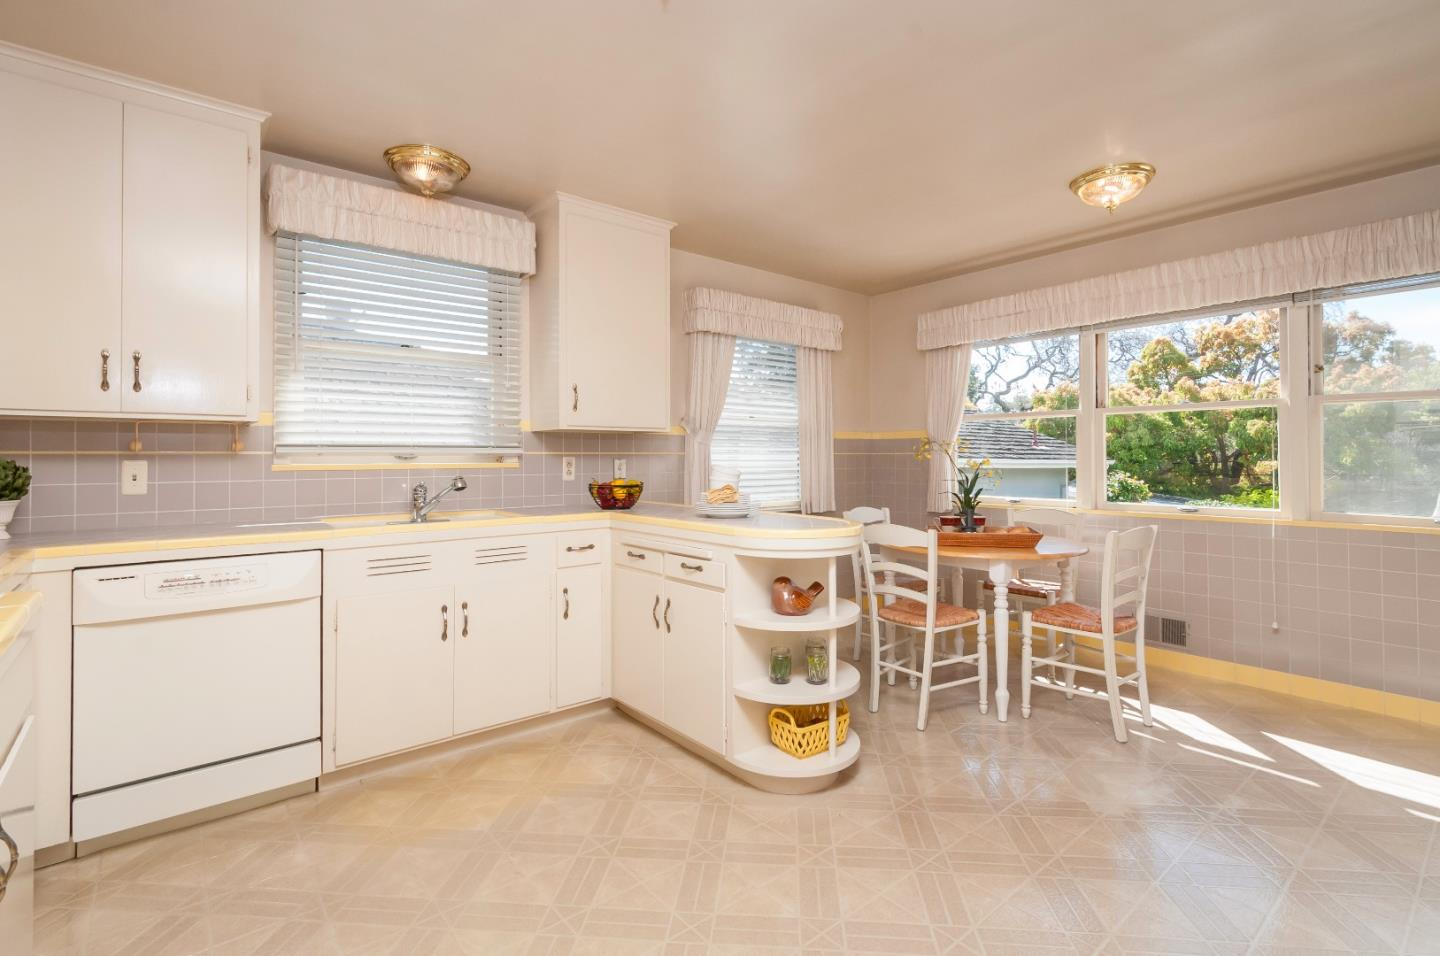 Additional photo for property listing at 1248 Vernon Ter  SAN MATEO, CALIFORNIA 94402